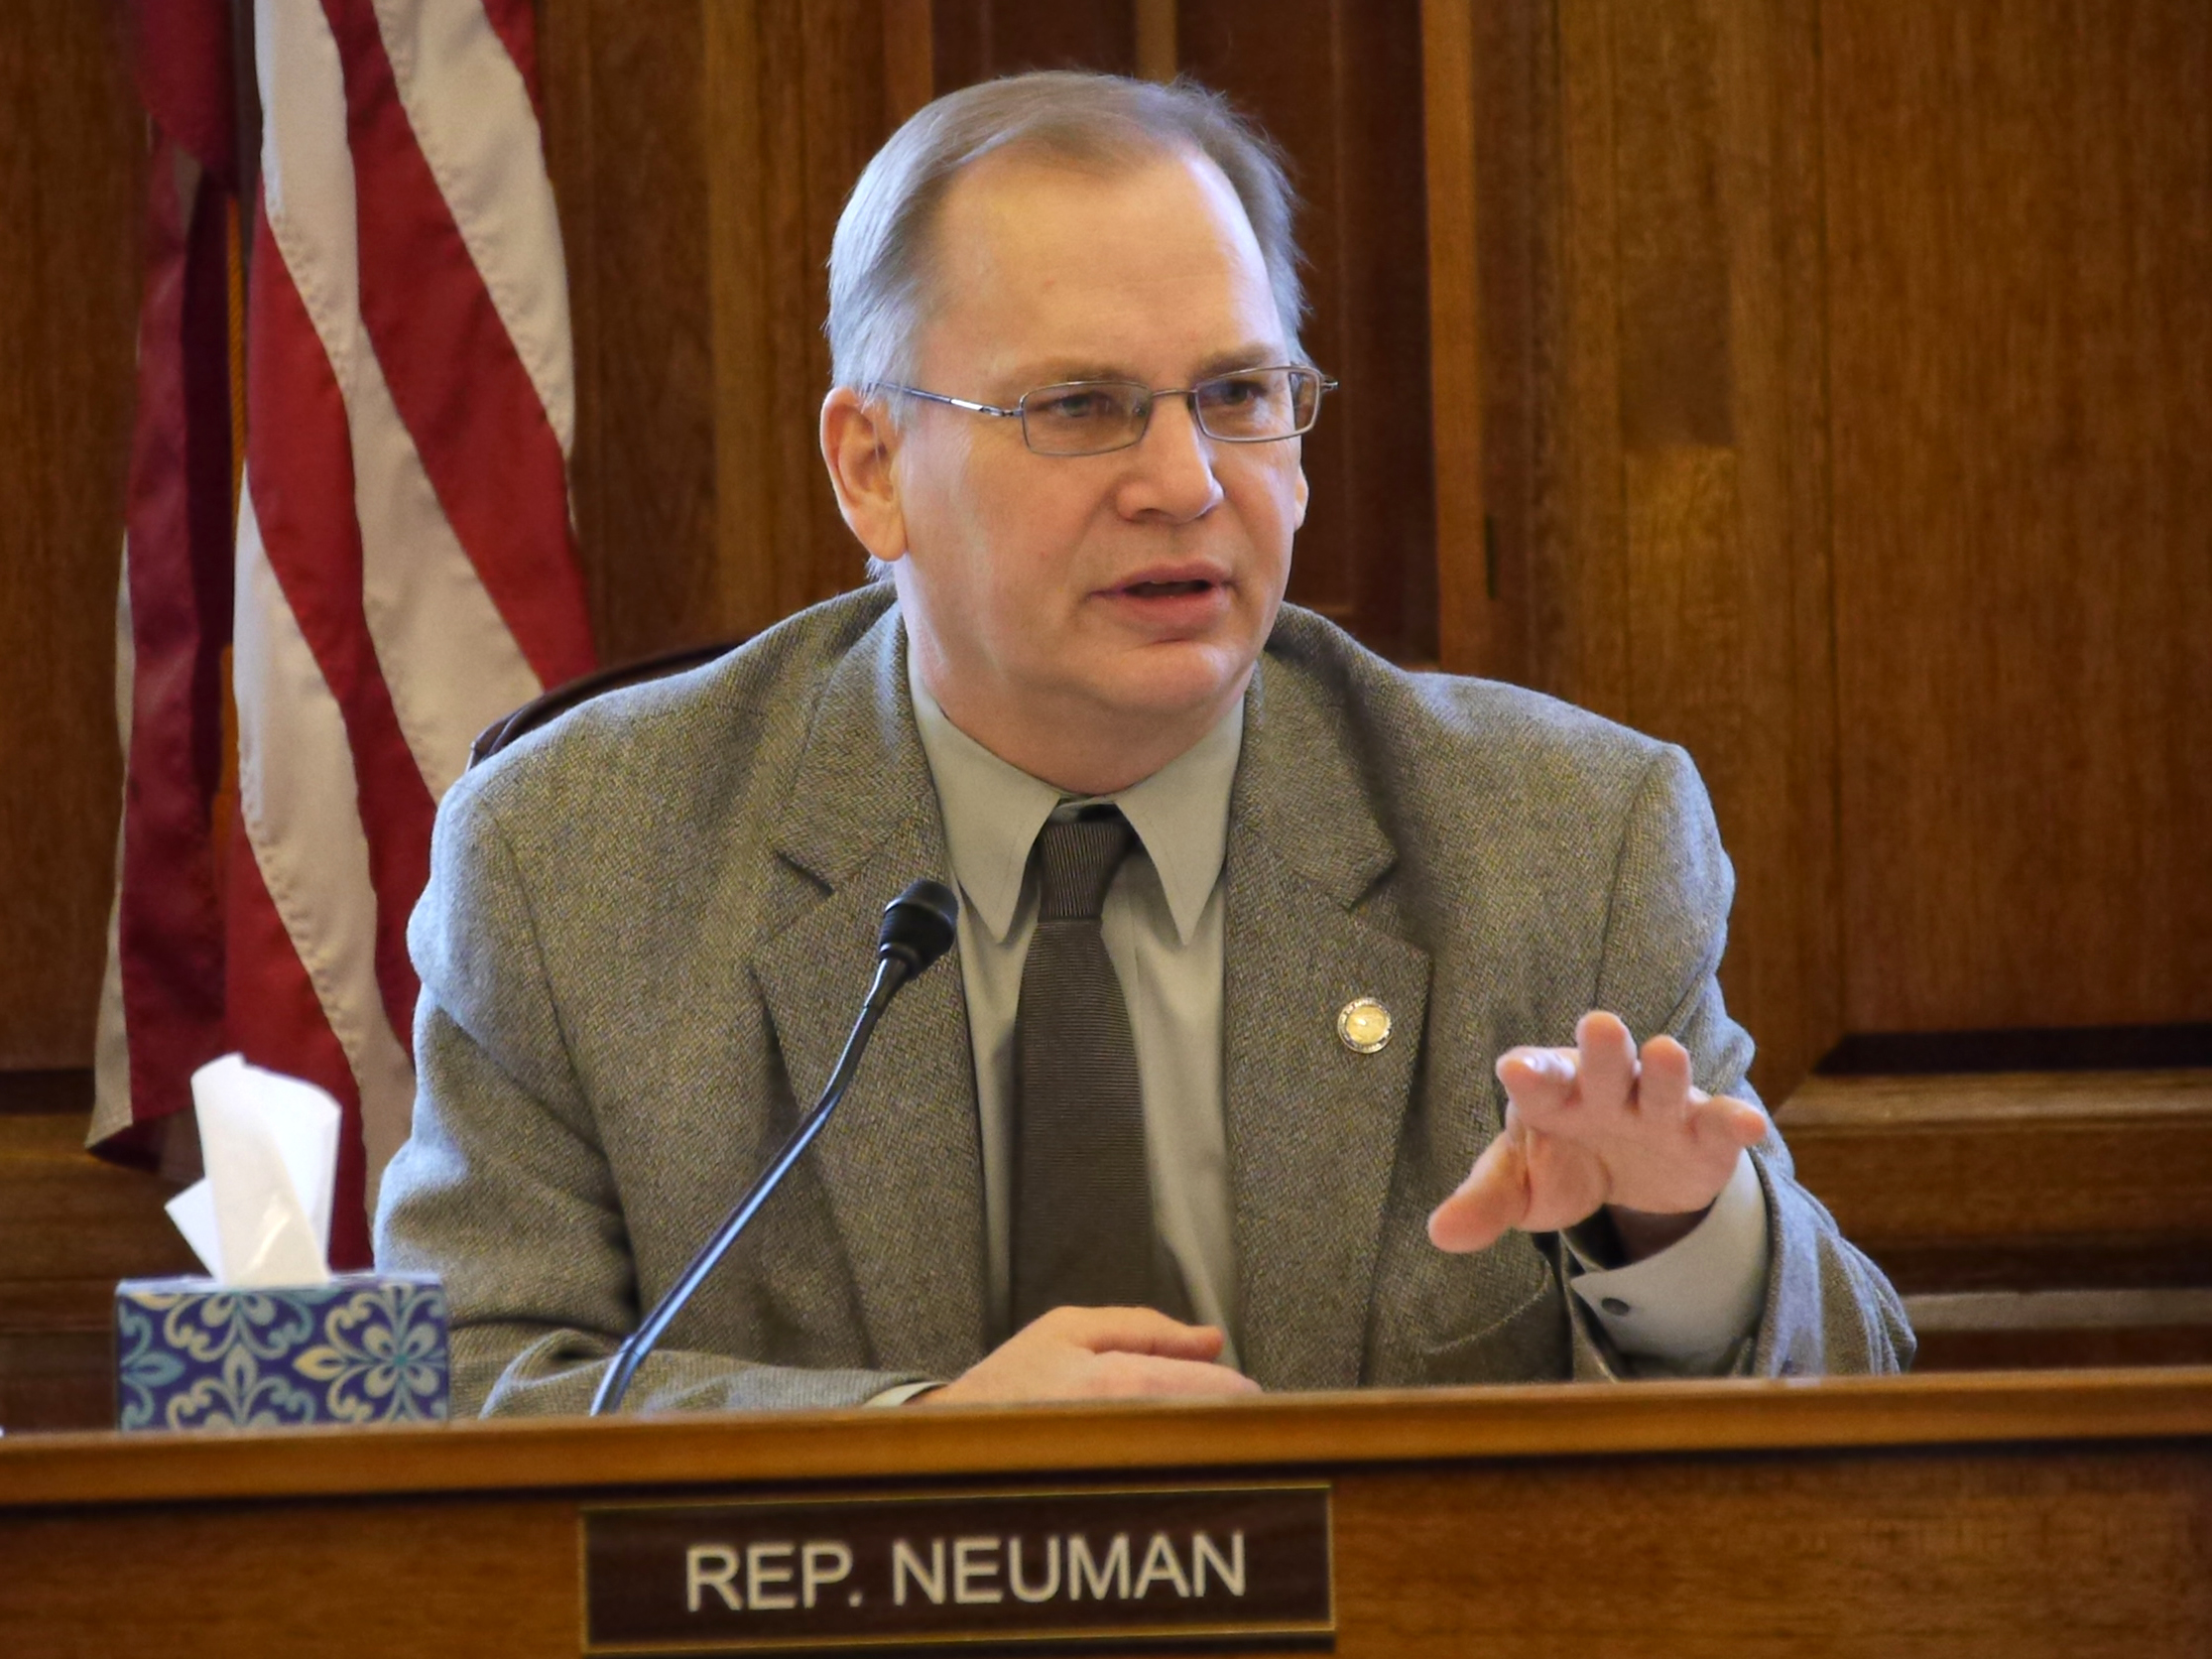 Rep. Mark Neuman, R-Big Lake, during discussions about the state operating budget shortly before it was passed out of the House Finance Committee, March 9, 2016. (Photo by Skip Gray/360 North)